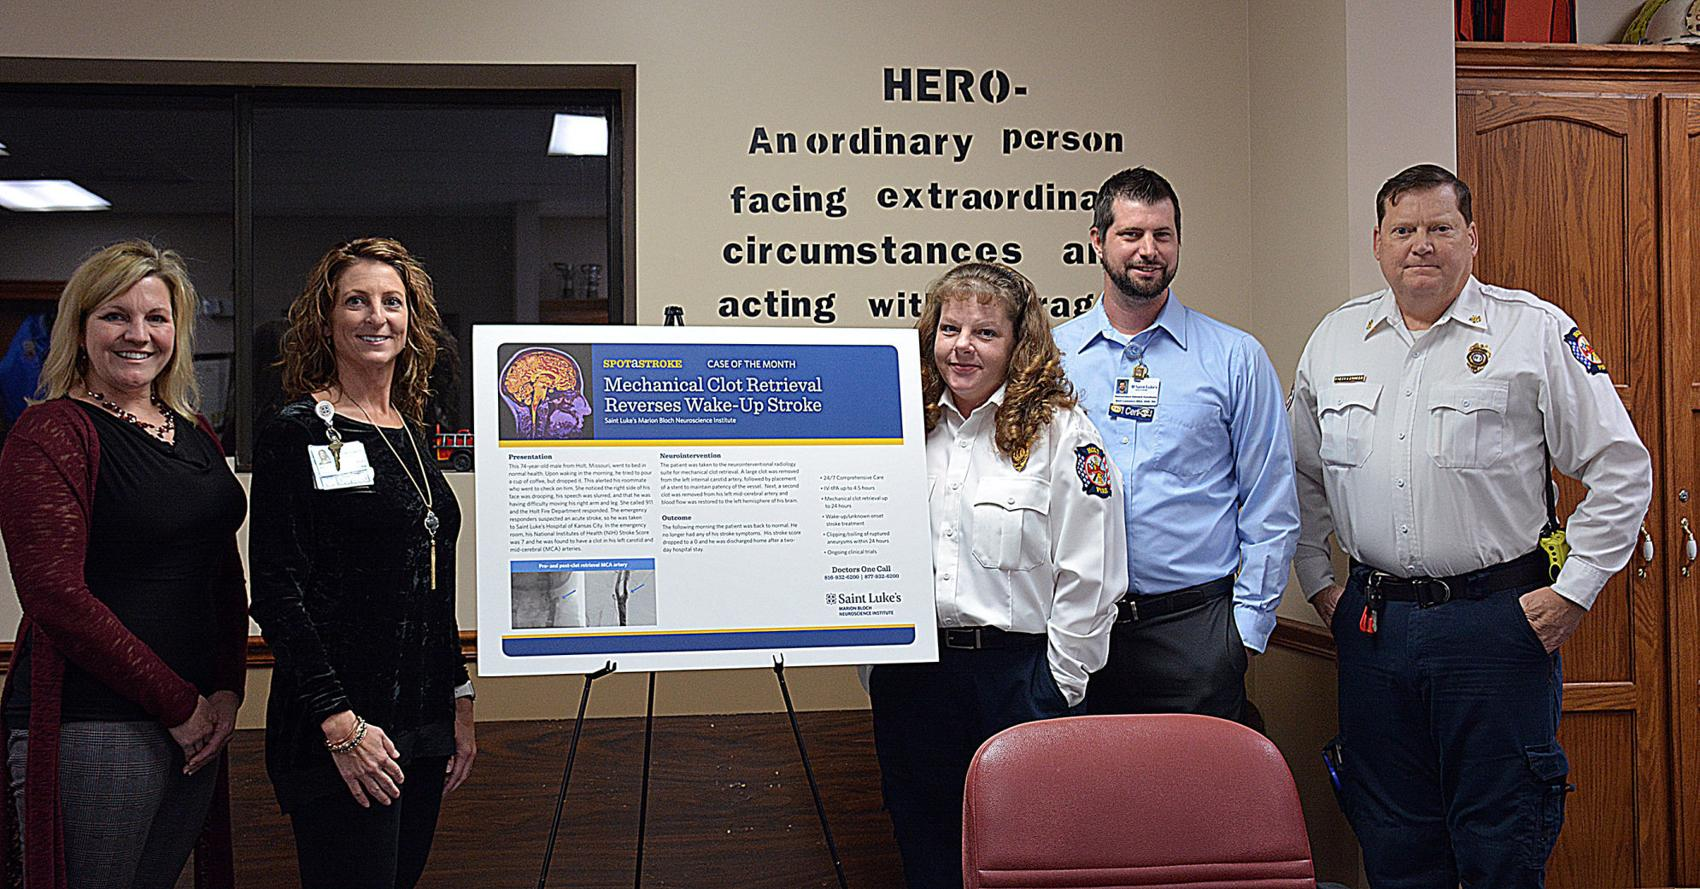 Courier Tribune: Hospital Honors Fire District for Stroke Patient Care